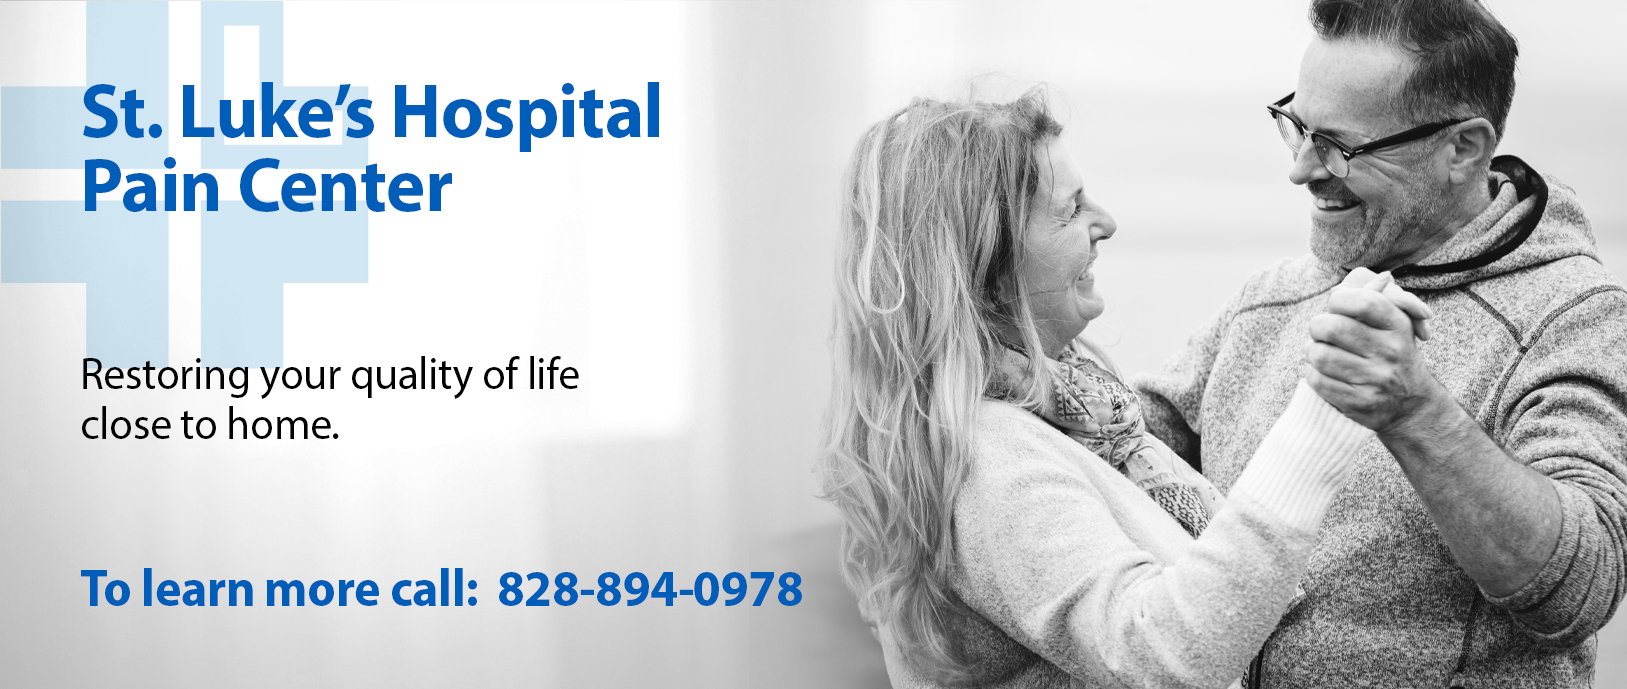 A photo of a woman smiling. My hospital for pain relief. St. Luke's Hospital Pain Center helps you manage pain without traveling long distance. If you have any questions call 828-894-0978